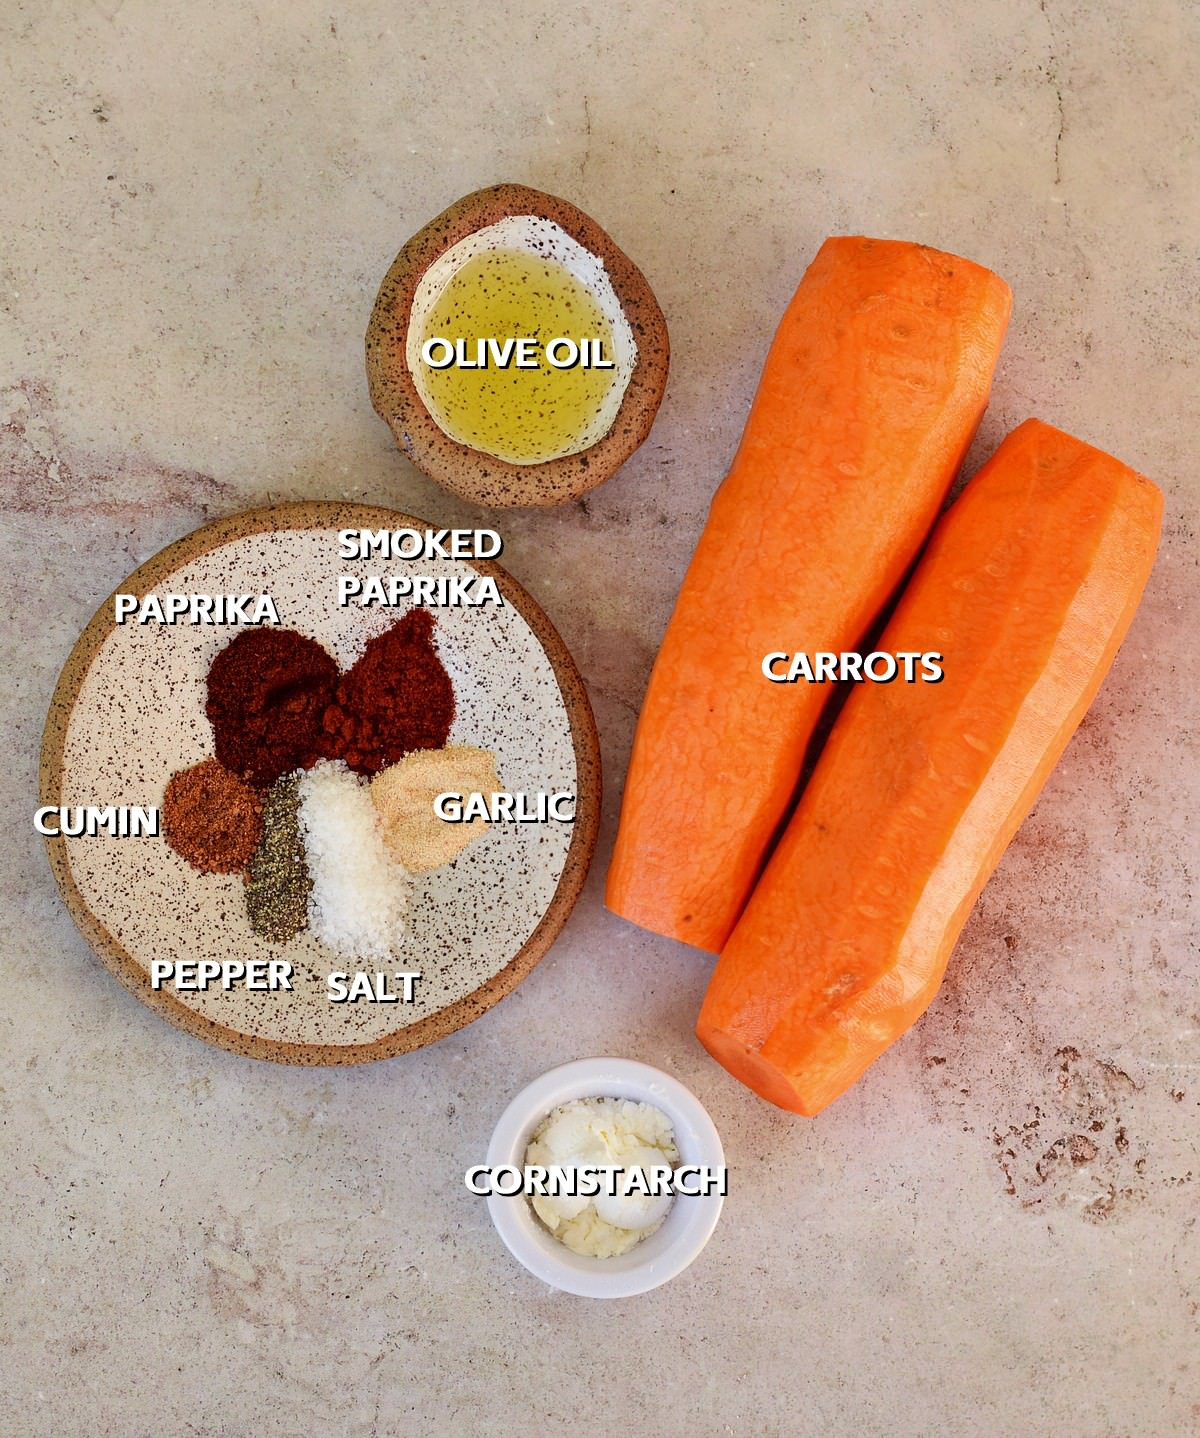 Ingredients for oven-baked sticks of carrots